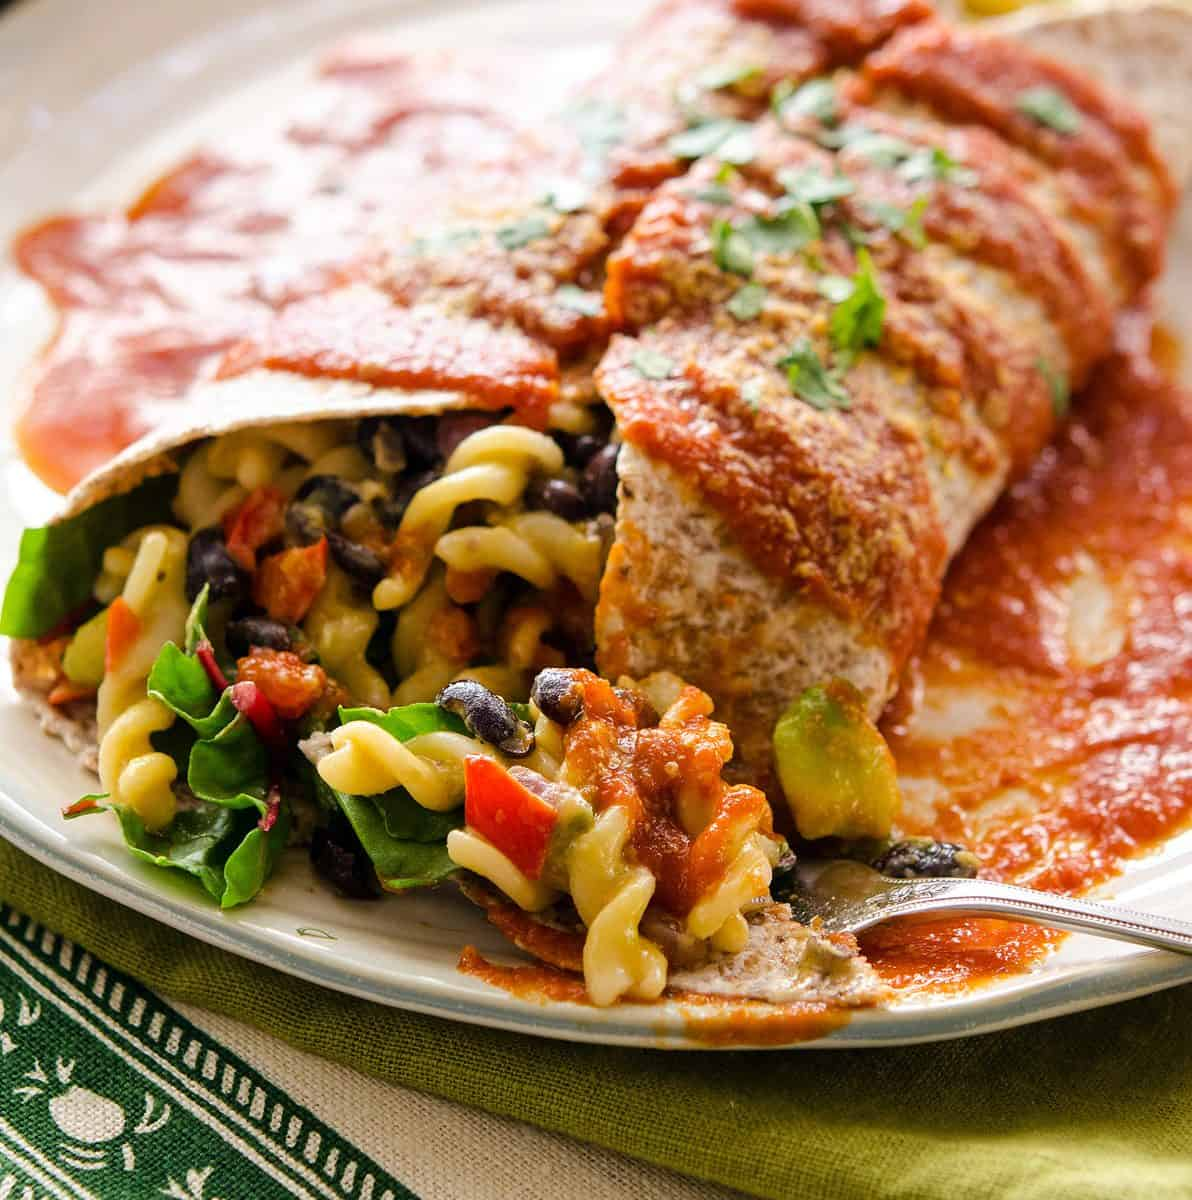 A large burrito stuffed with Mac and cheese and topped with red sauce